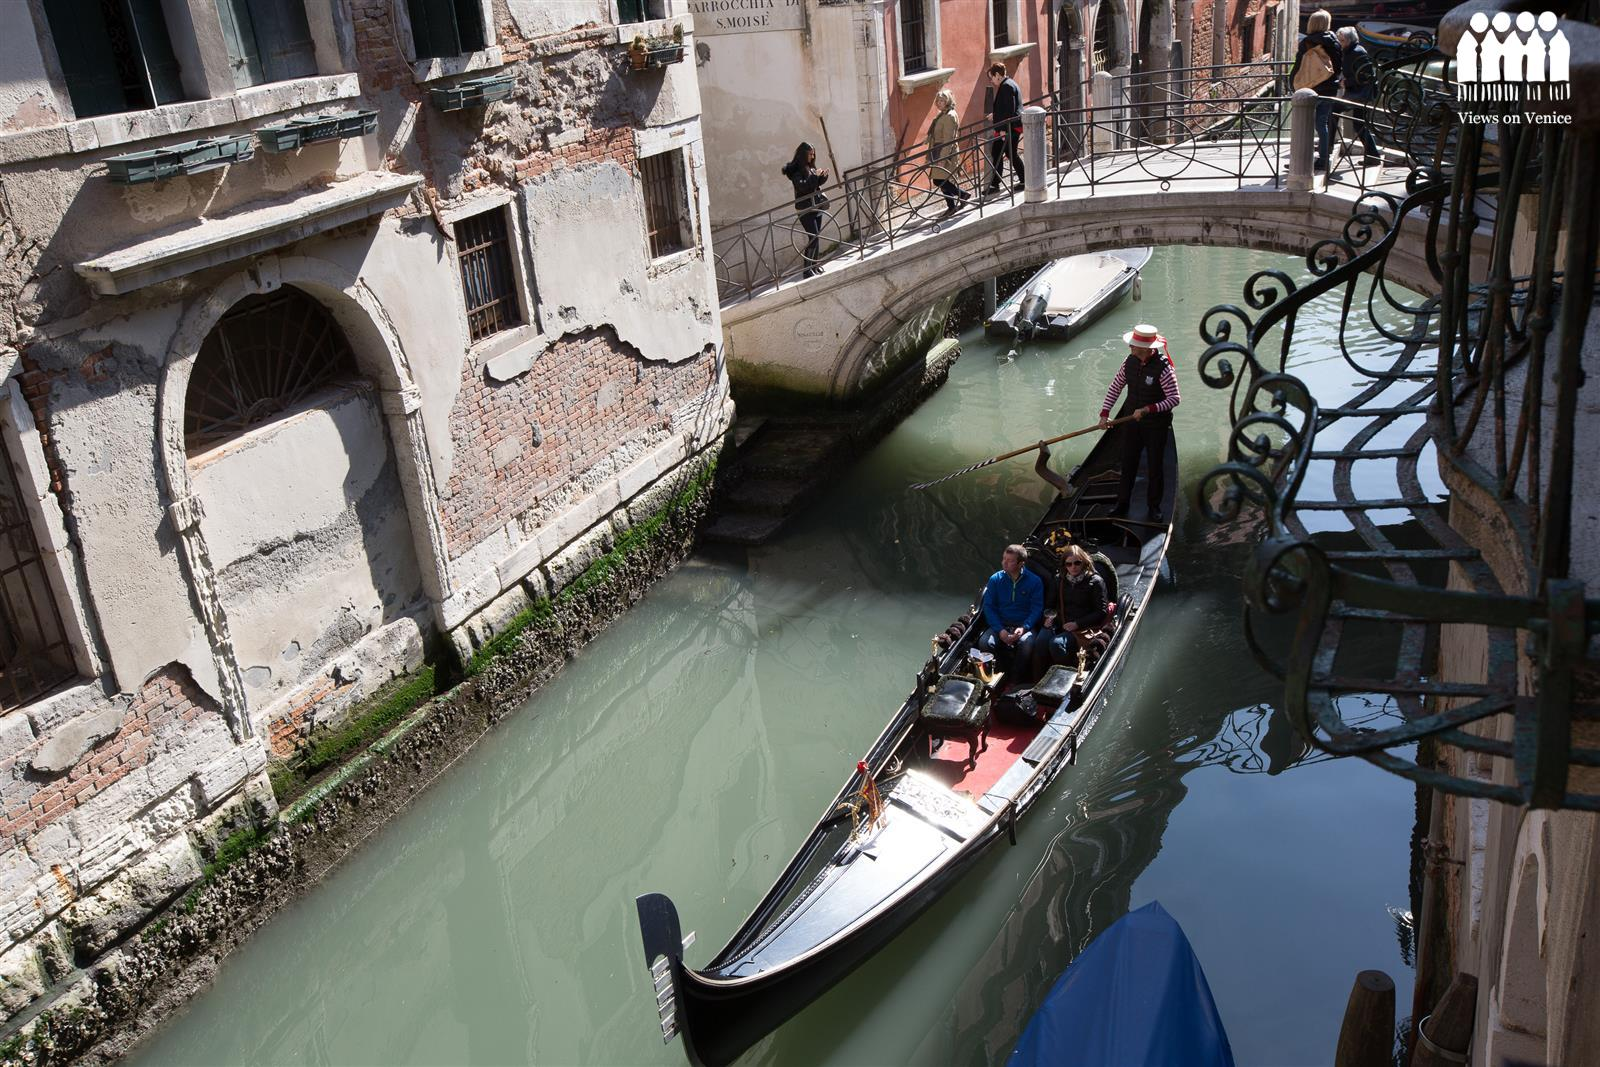 via_della_seta_apartment_view_venice_hotelgoldmine.com_review.